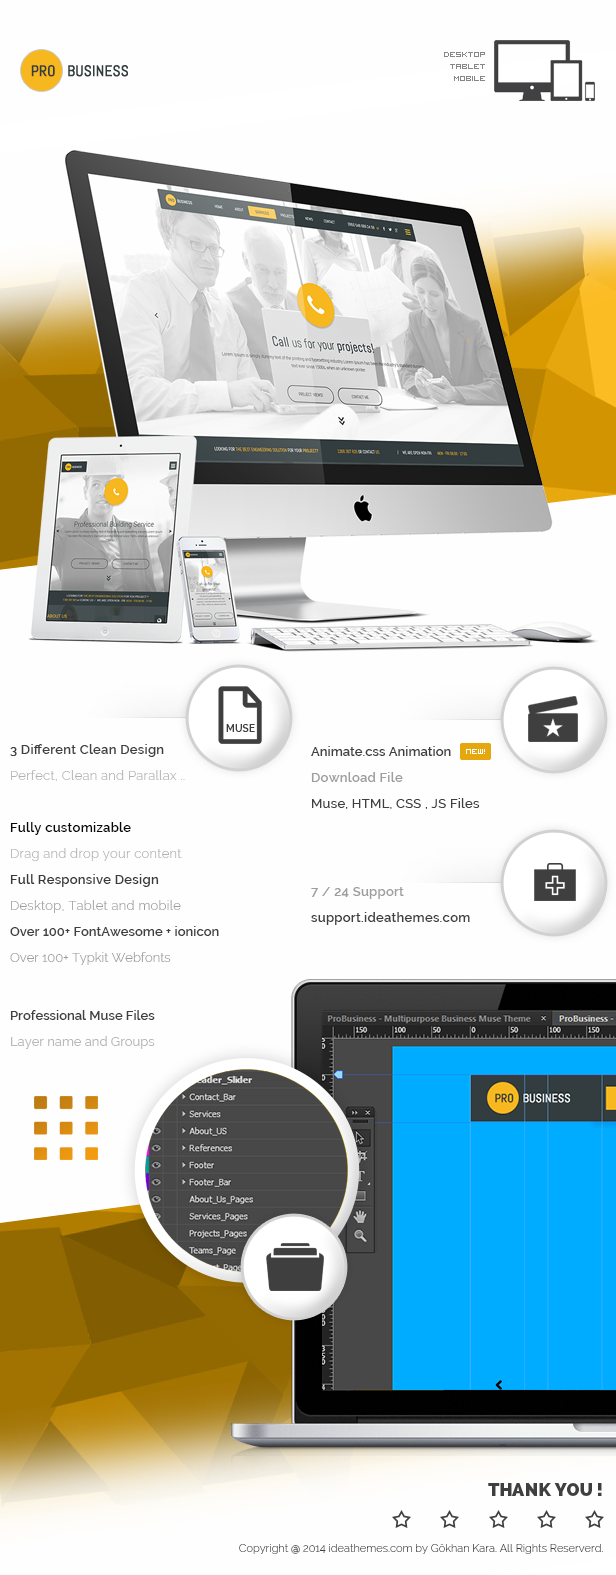 ProBusiness - Multipurpose Business Muse Theme